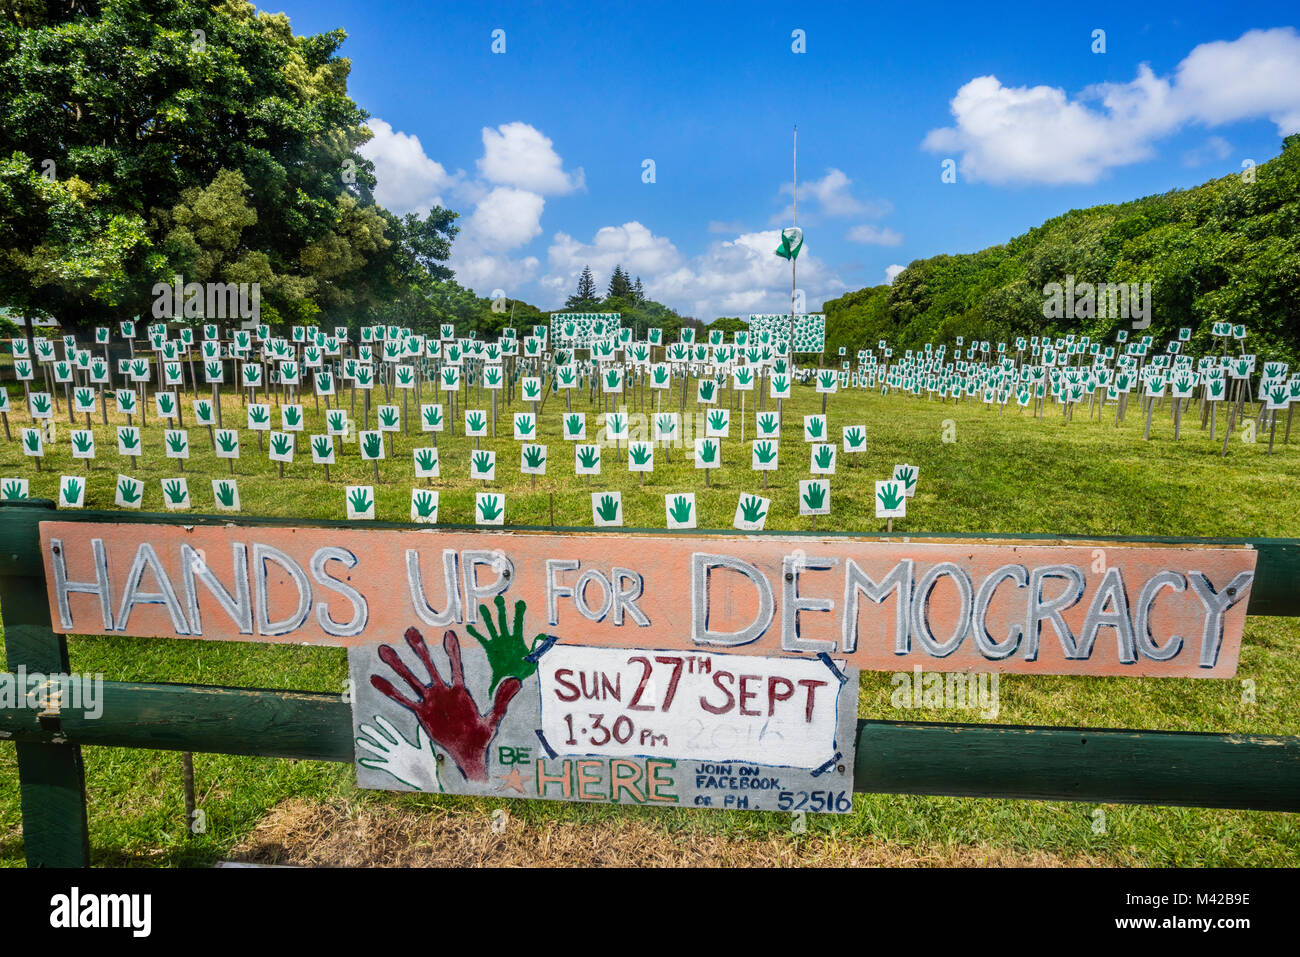 Norfolk Island, Australian external territory, Hands up for Democracy Park at Burnt Pine, an initiative of Norfolk - Stock Image